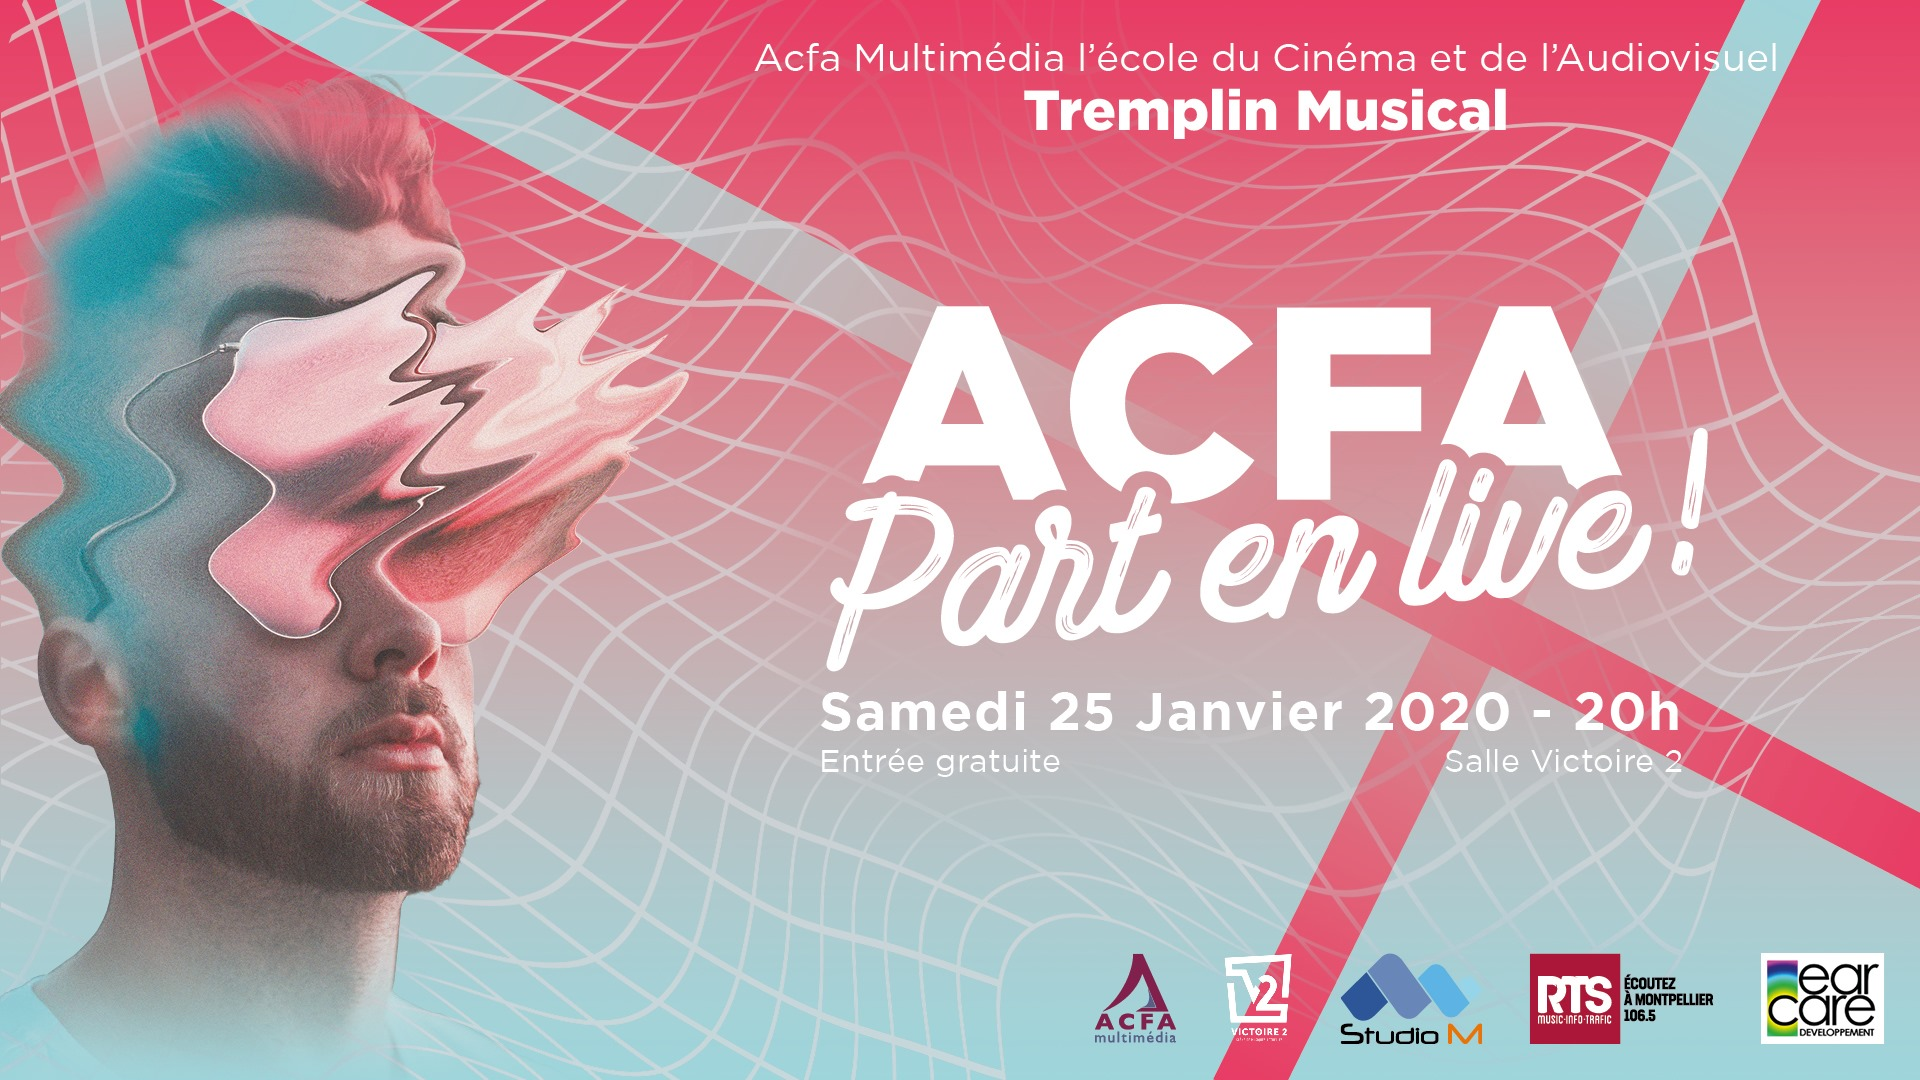 4ème tremplin musical ACFA part en Live